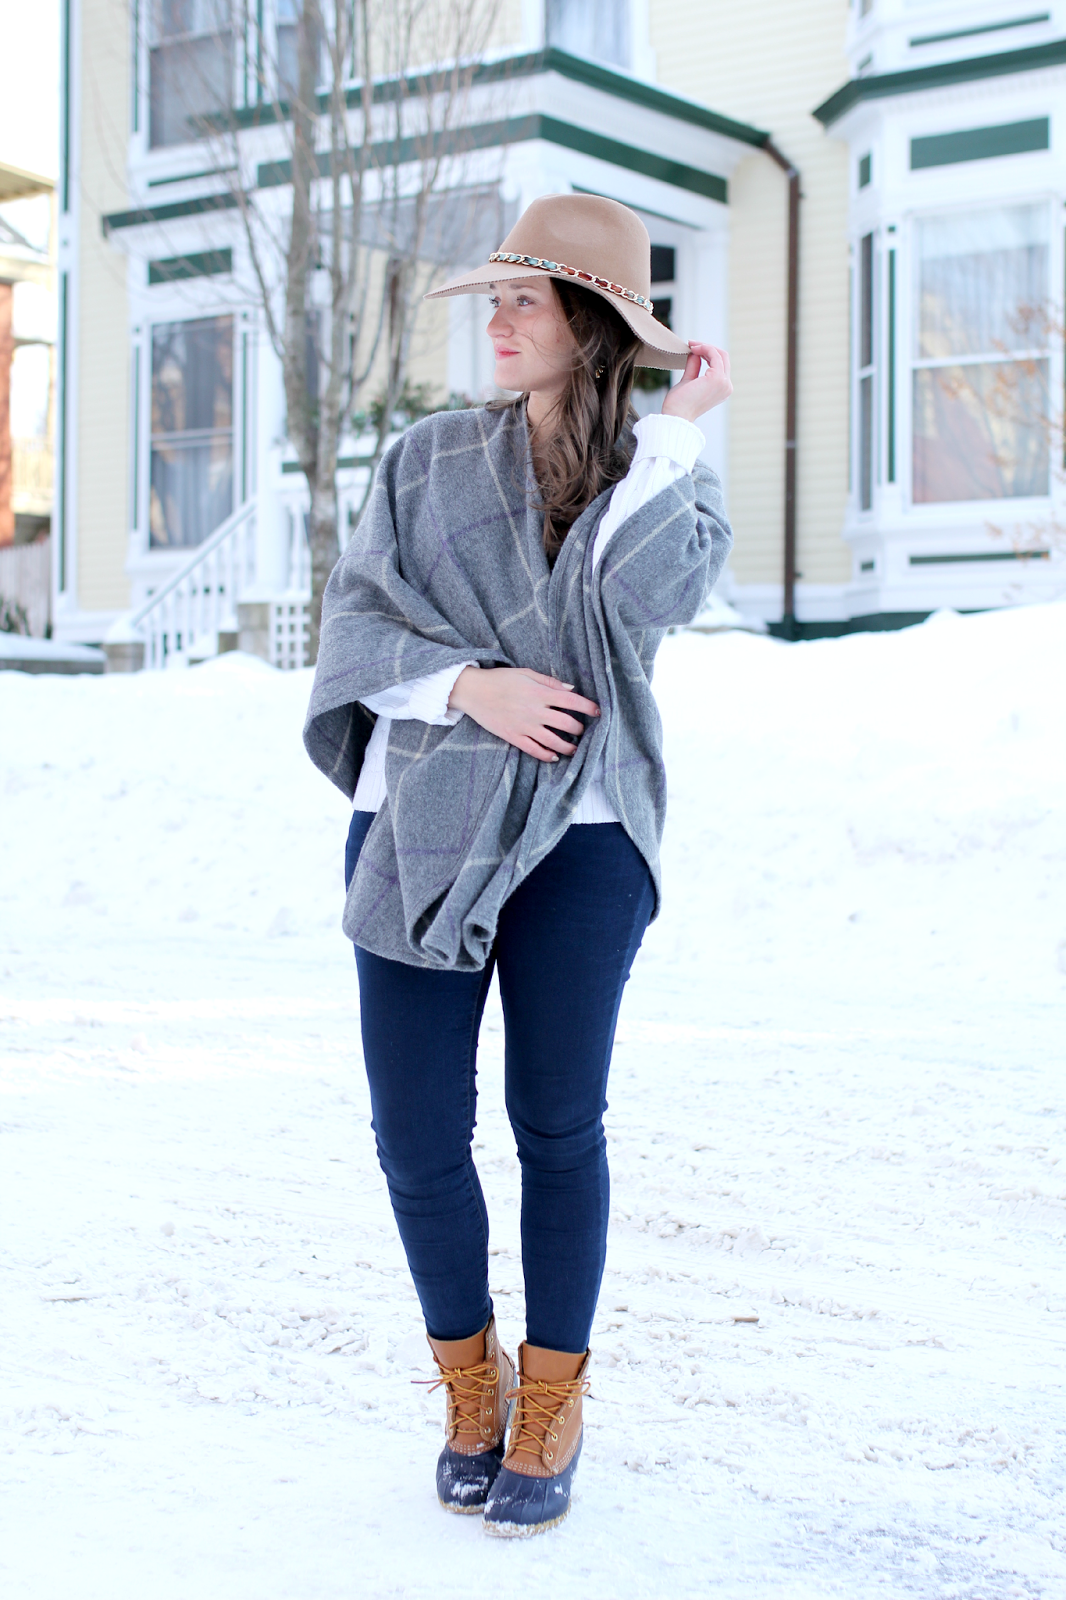 LL Bean Plaid Wrap + Bean Boots